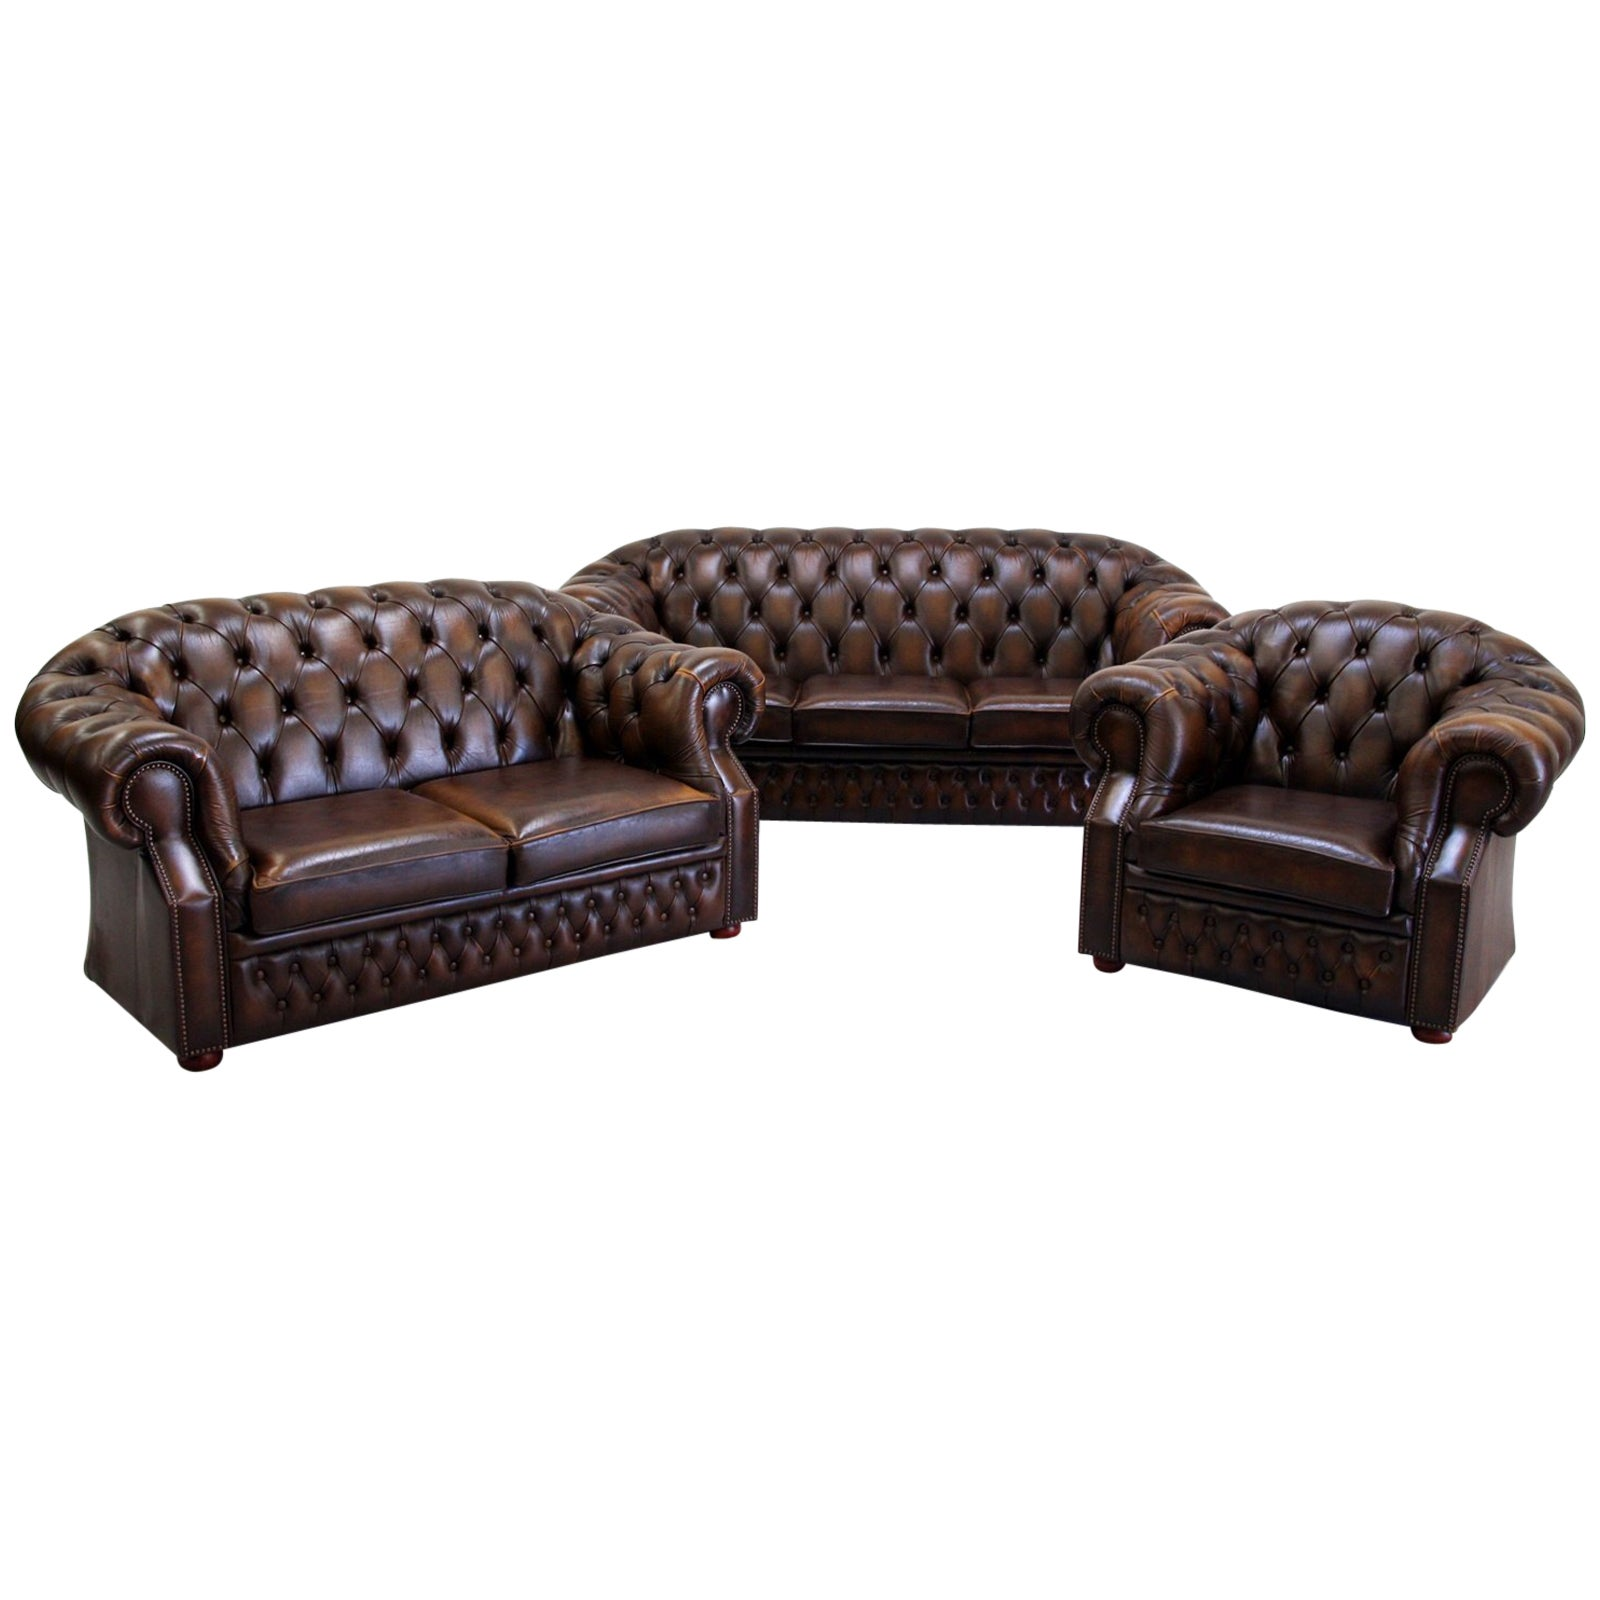 Chesterfield Sofa Set Armchair Genuine Leather Couch Antique ...